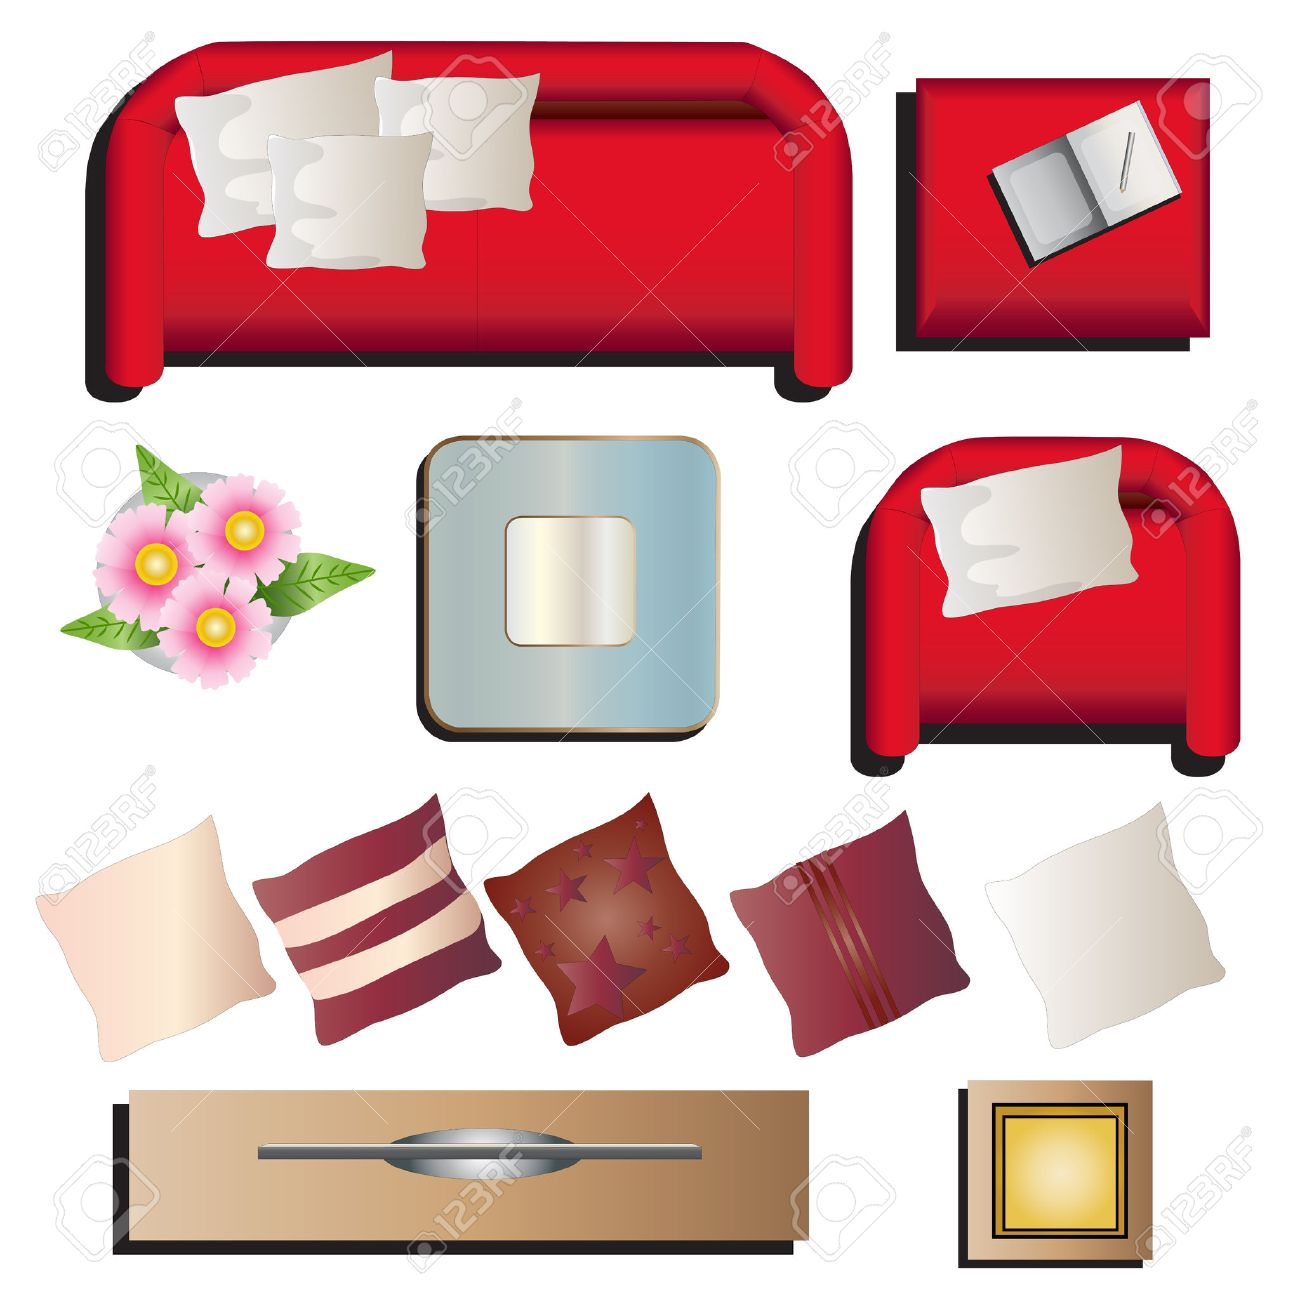 Living Room Furniture Clipart Top View Set 10 For Interior Vector Illustration Stock 48755778